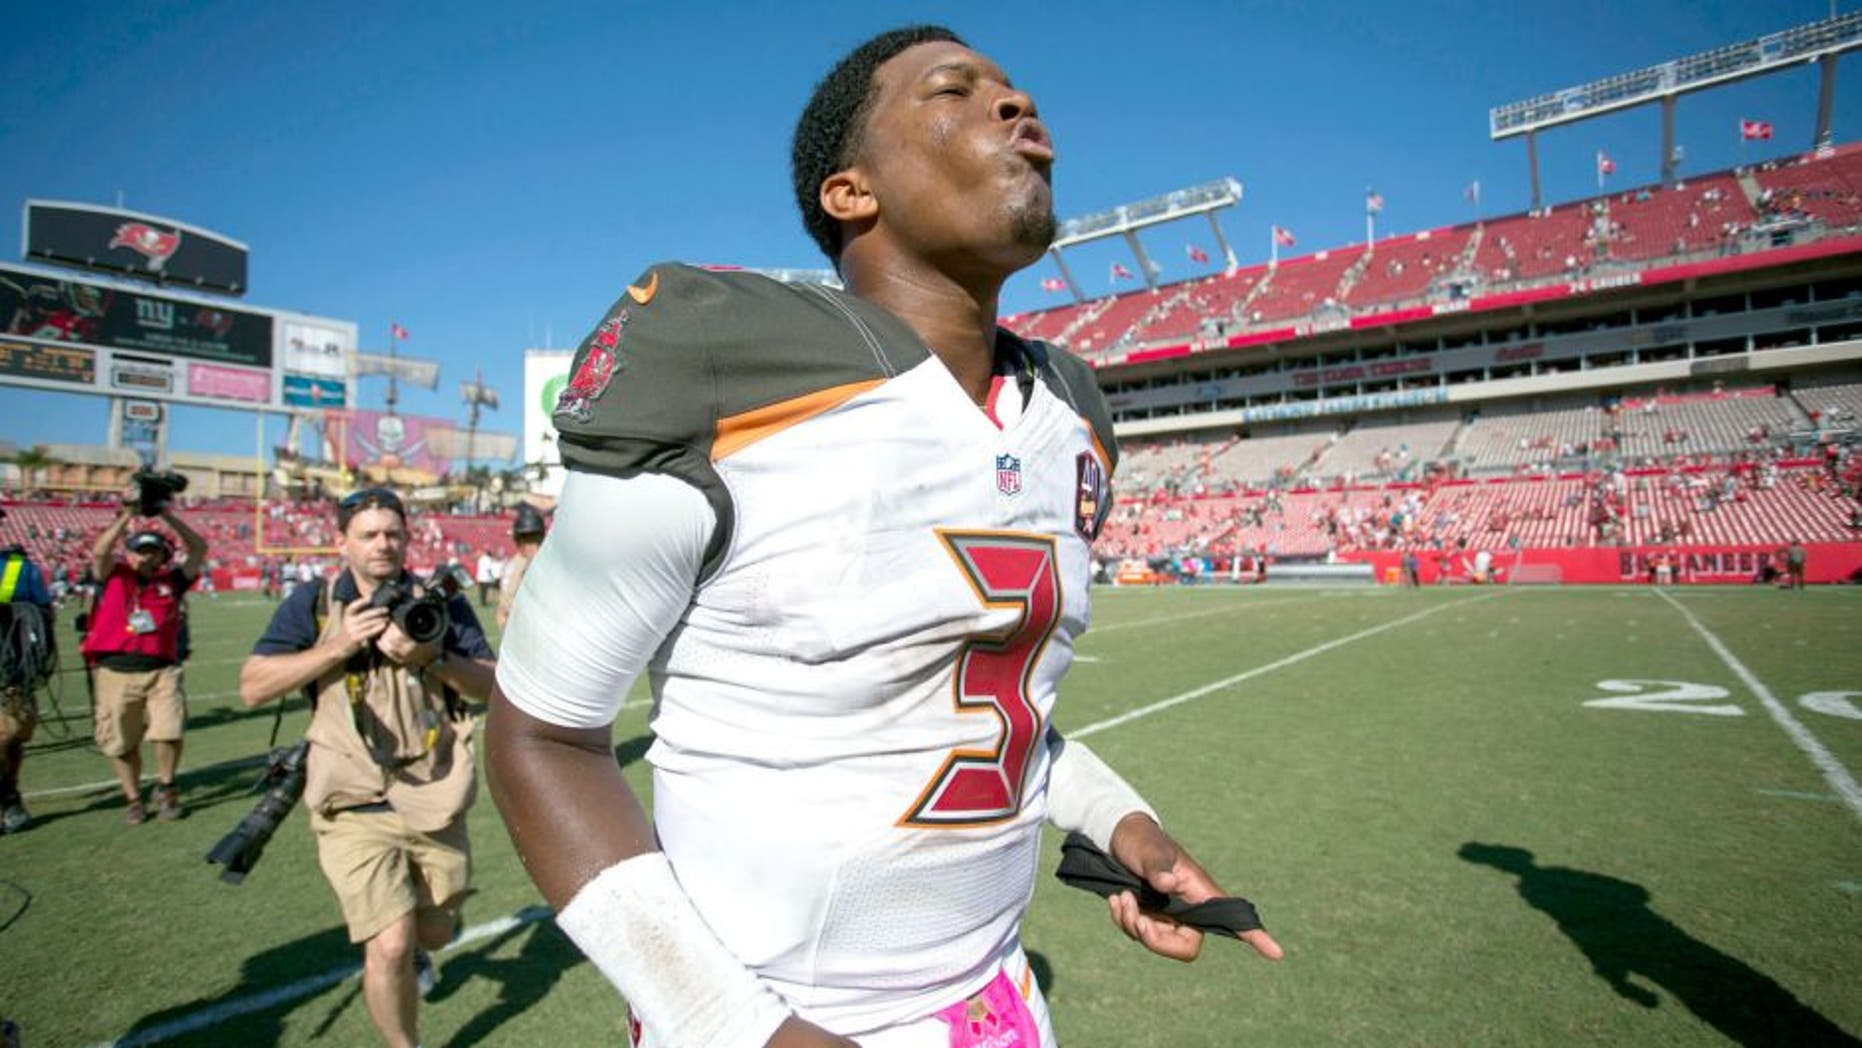 Oct 11, 2015; Tampa, FL, USA; Tampa Bay Buccaneers quarterback Jameis Winston (3) runs off the field at the end of the game against the Jacksonville Jaguars at Raymond James Stadium. The Tampa Bay Buccaneers won 38-31. Mandatory Credit: Logan Bowles-USA TODAY Sports